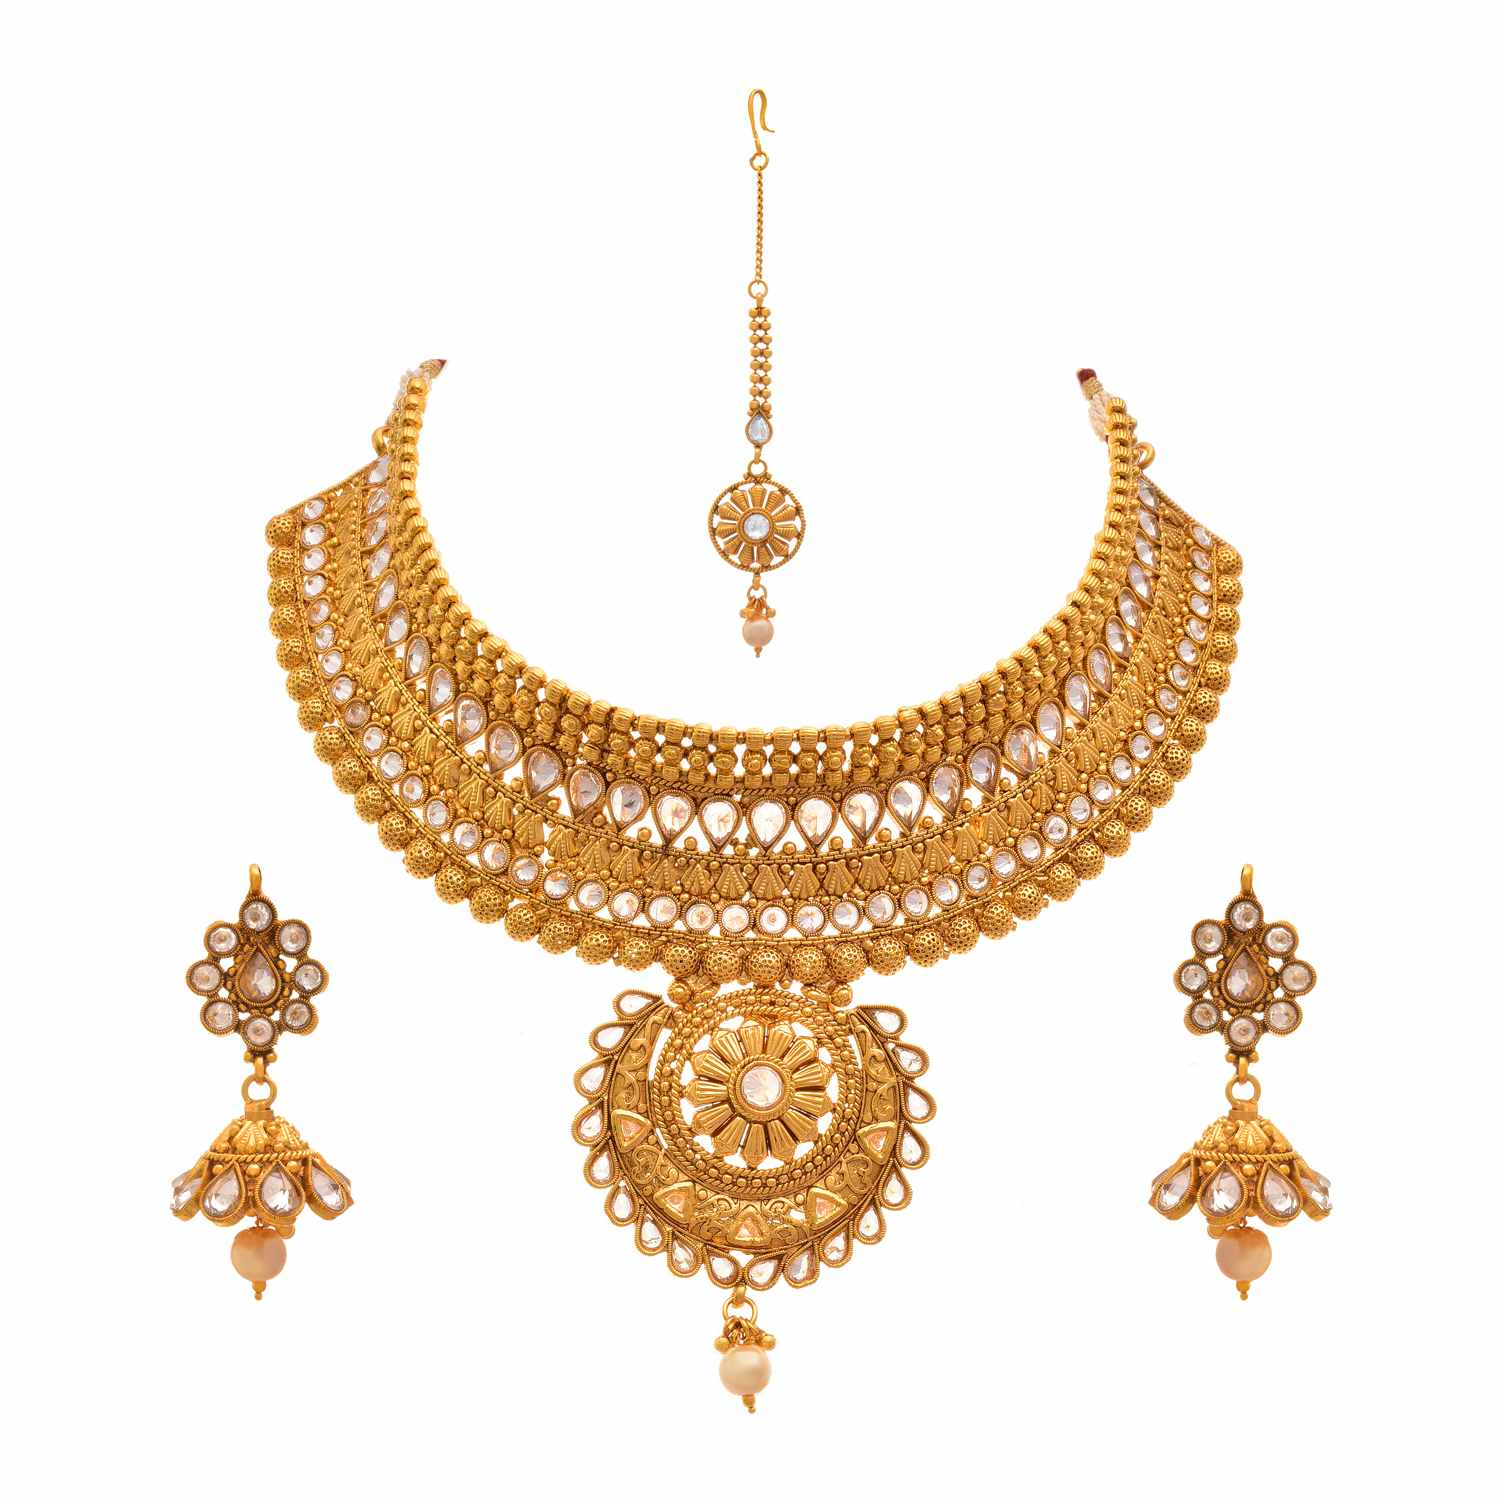 Traditional Ethnic One Gram Gold Plated Polki Diamonds Designer Semi Bridal Dulhan Necklace Set / Jewellery Set for Women